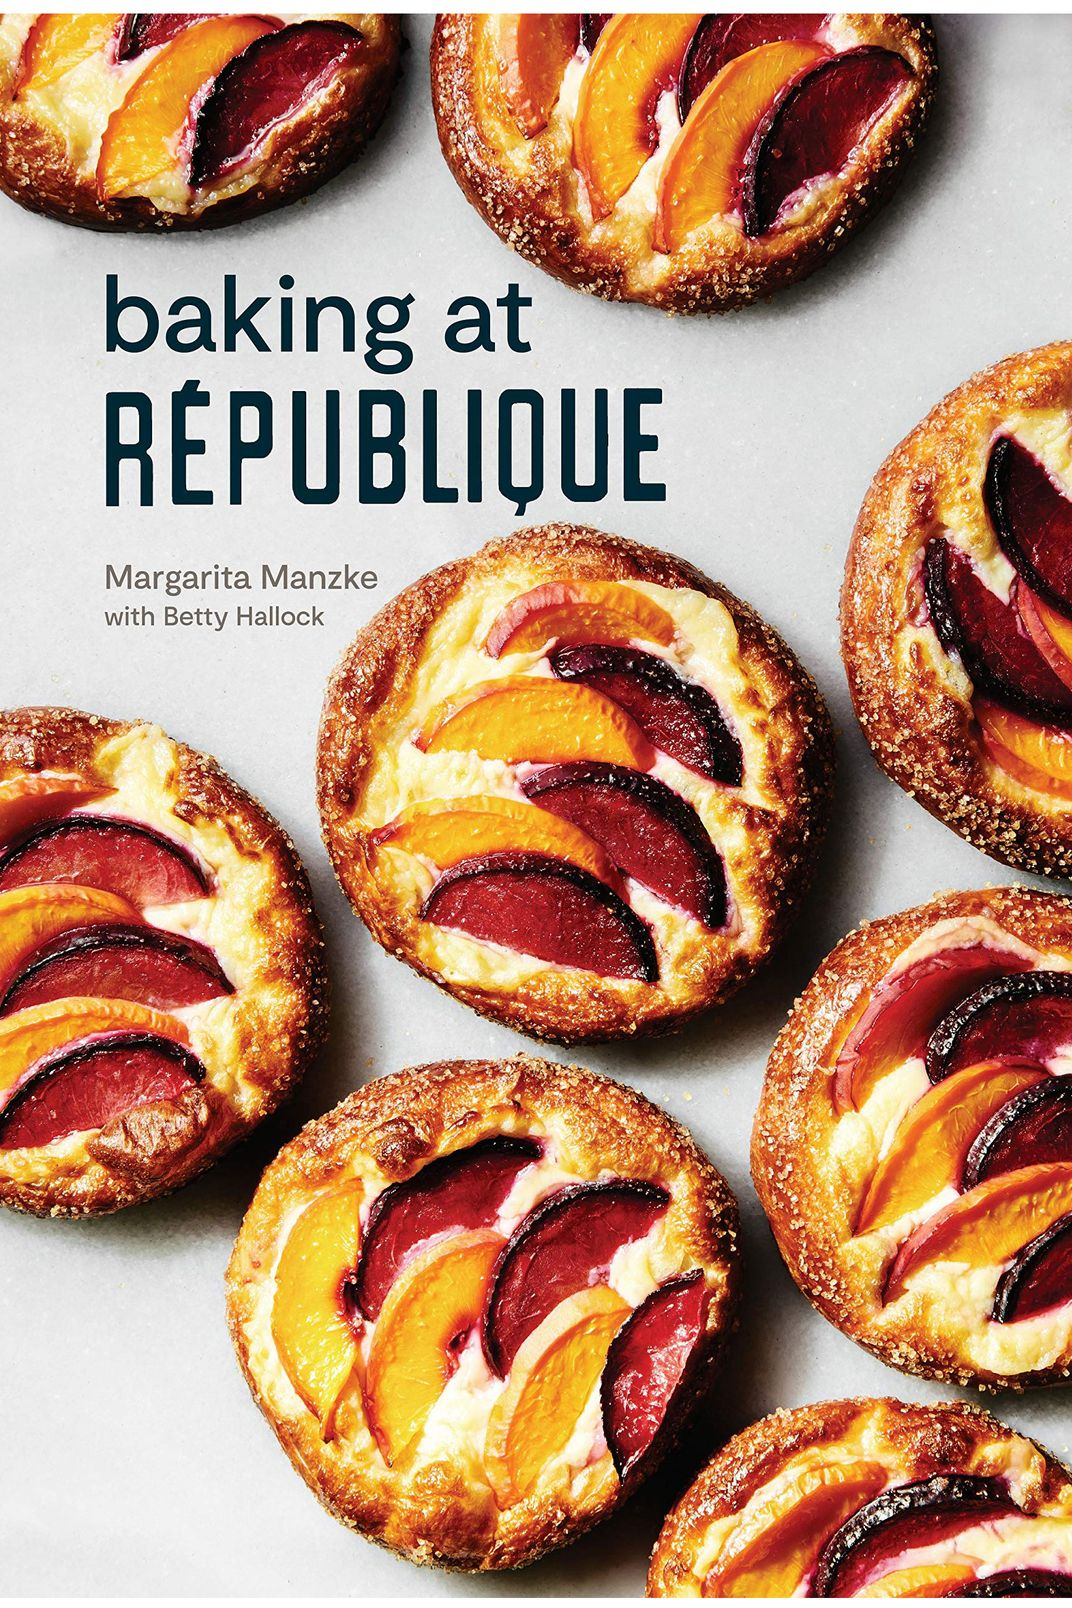 Raspberry-pistachio kouign-amanns from Baking at République: Masterful Techniques and Recipes